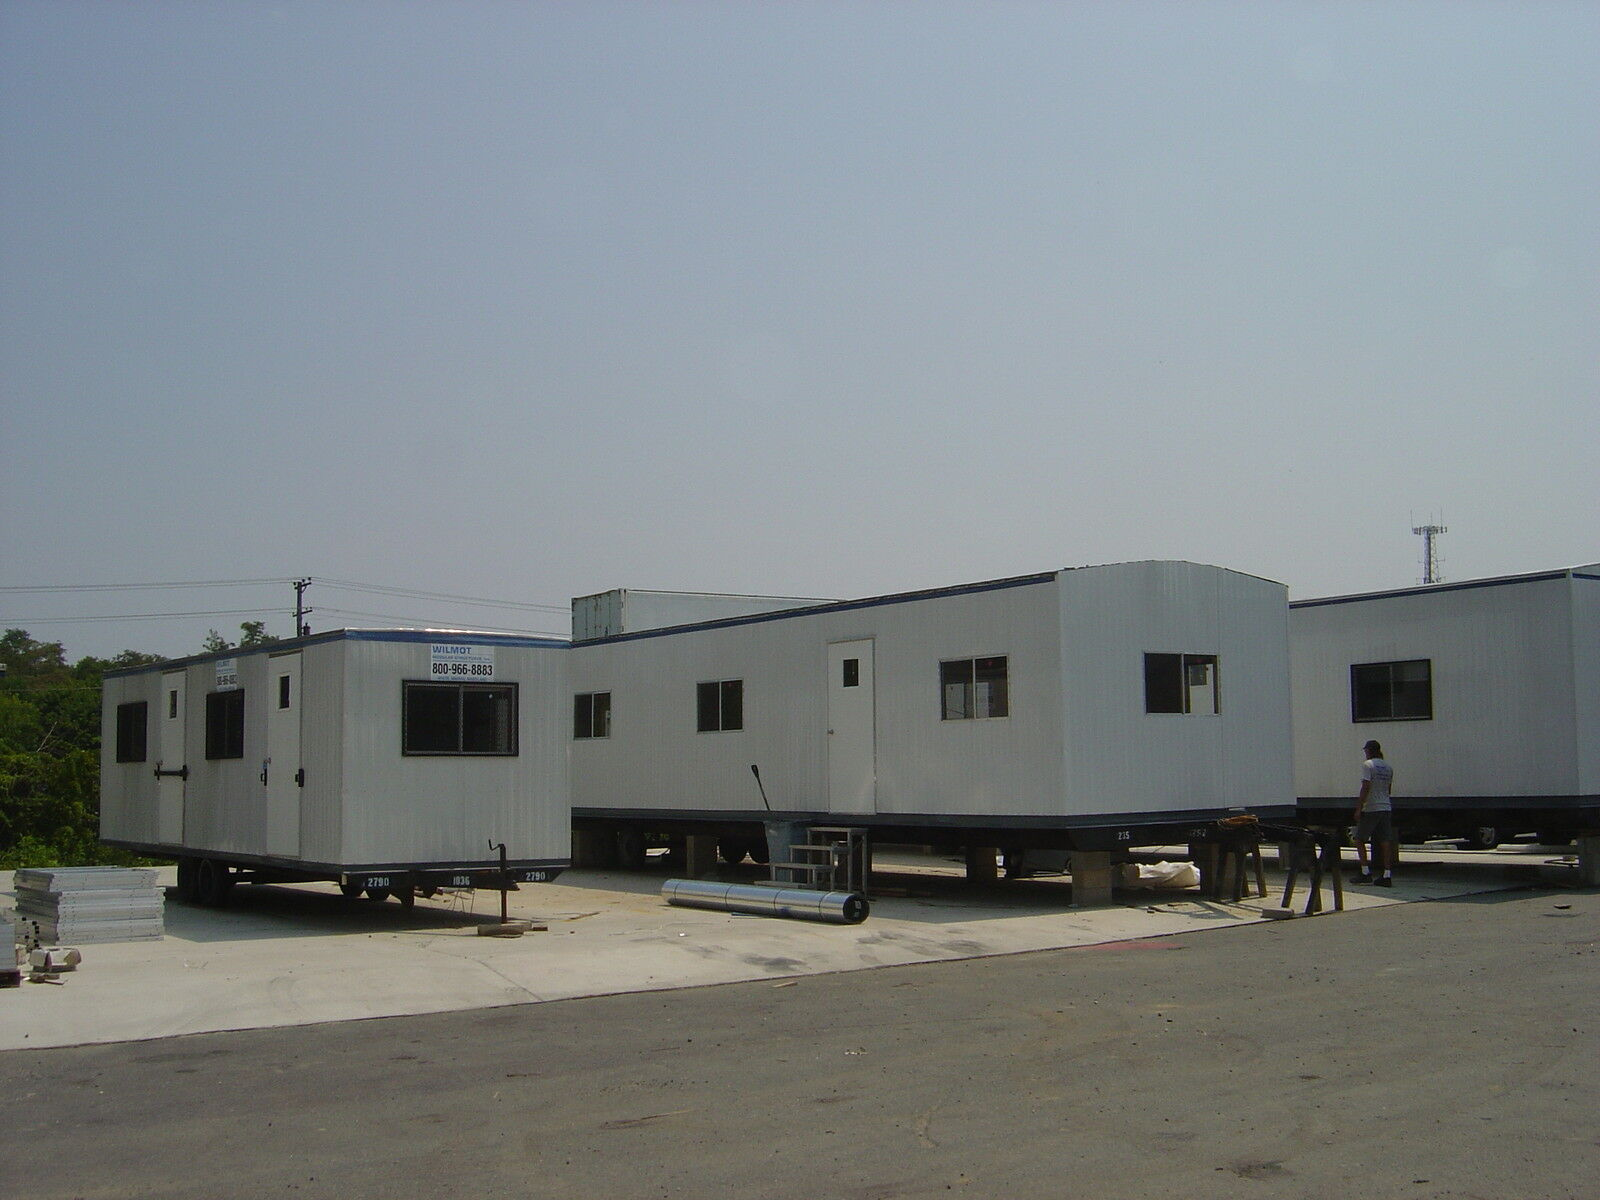 Office Trailers and More